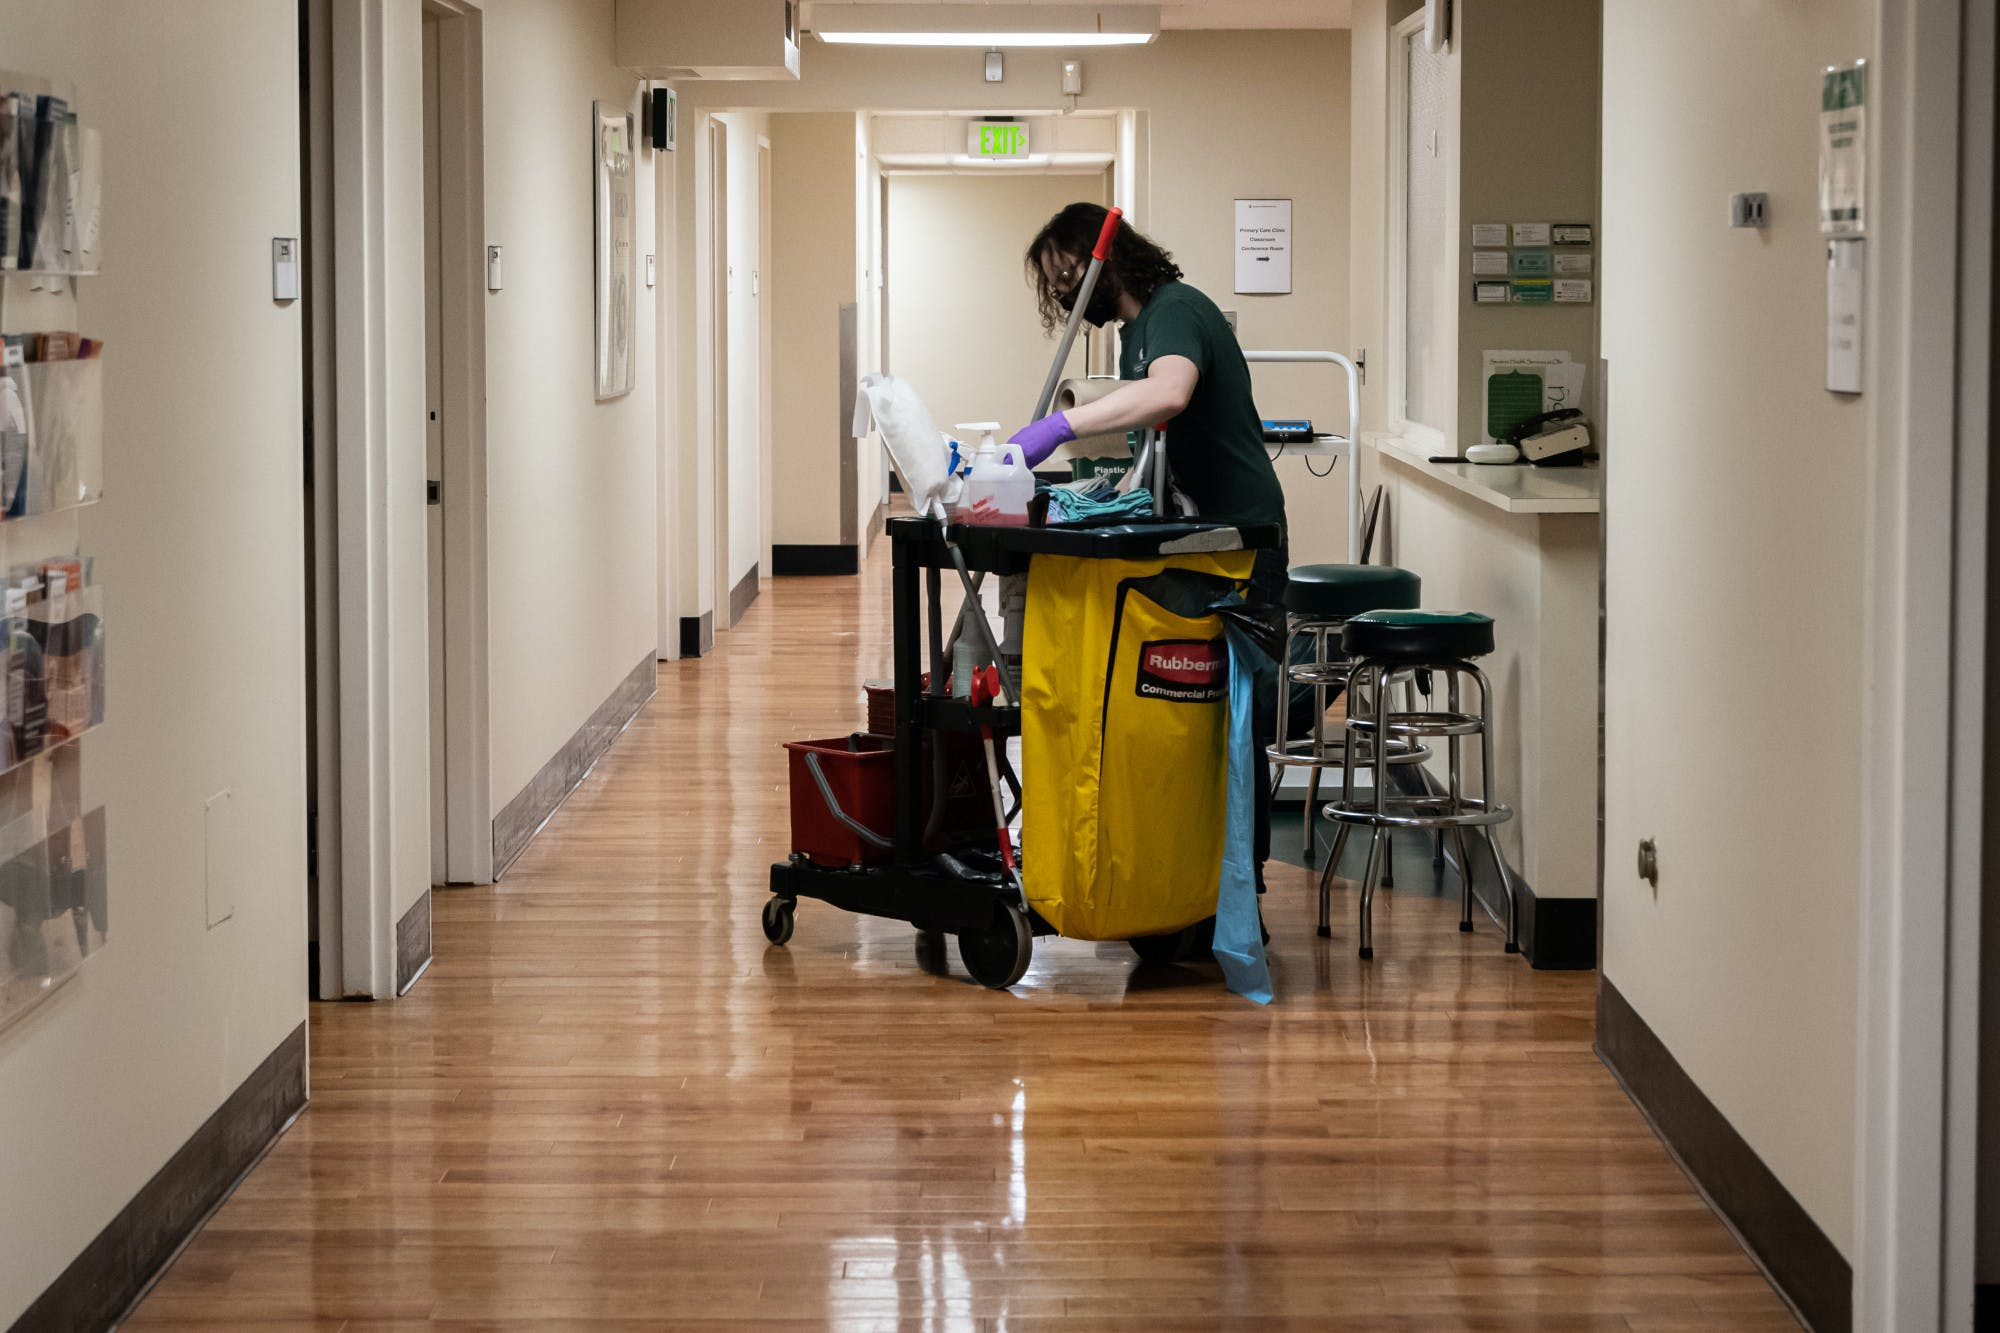 A person wearing a face mask and purple medical gloves looks into a cleaning supplies cart while standing in a medical building hallway.